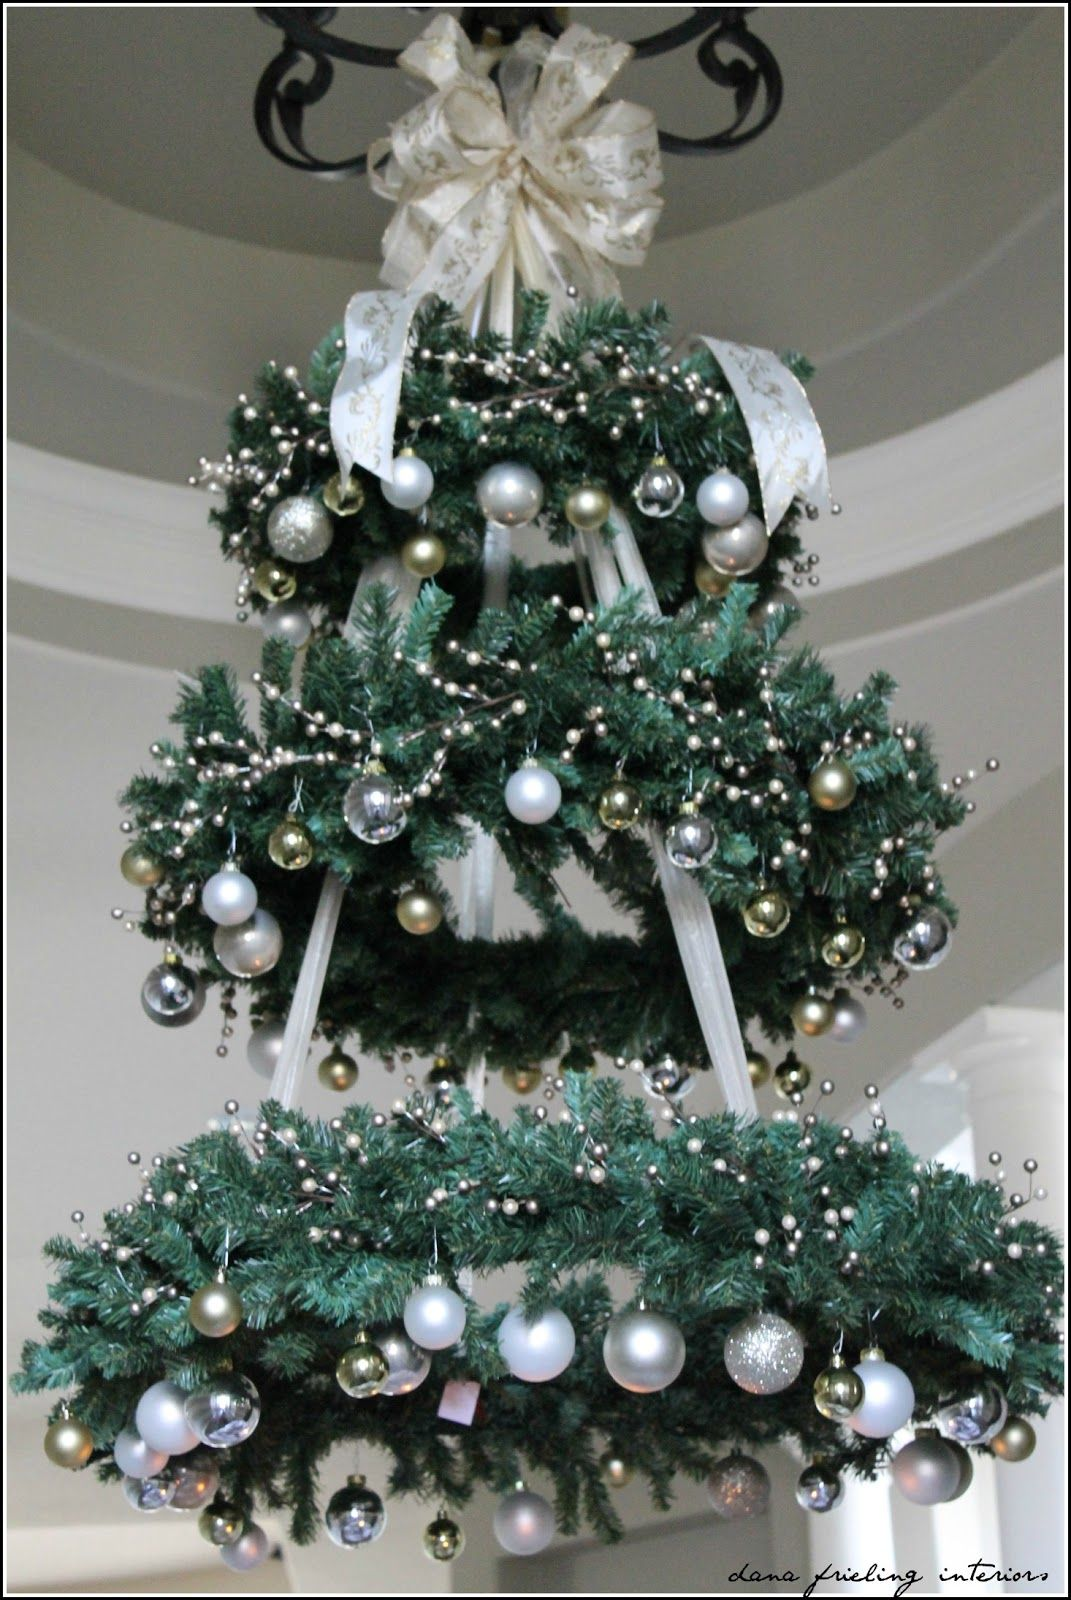 Hanging Christmas Tree Wreath Chandelier This Would Be So Pretty In The Entryway